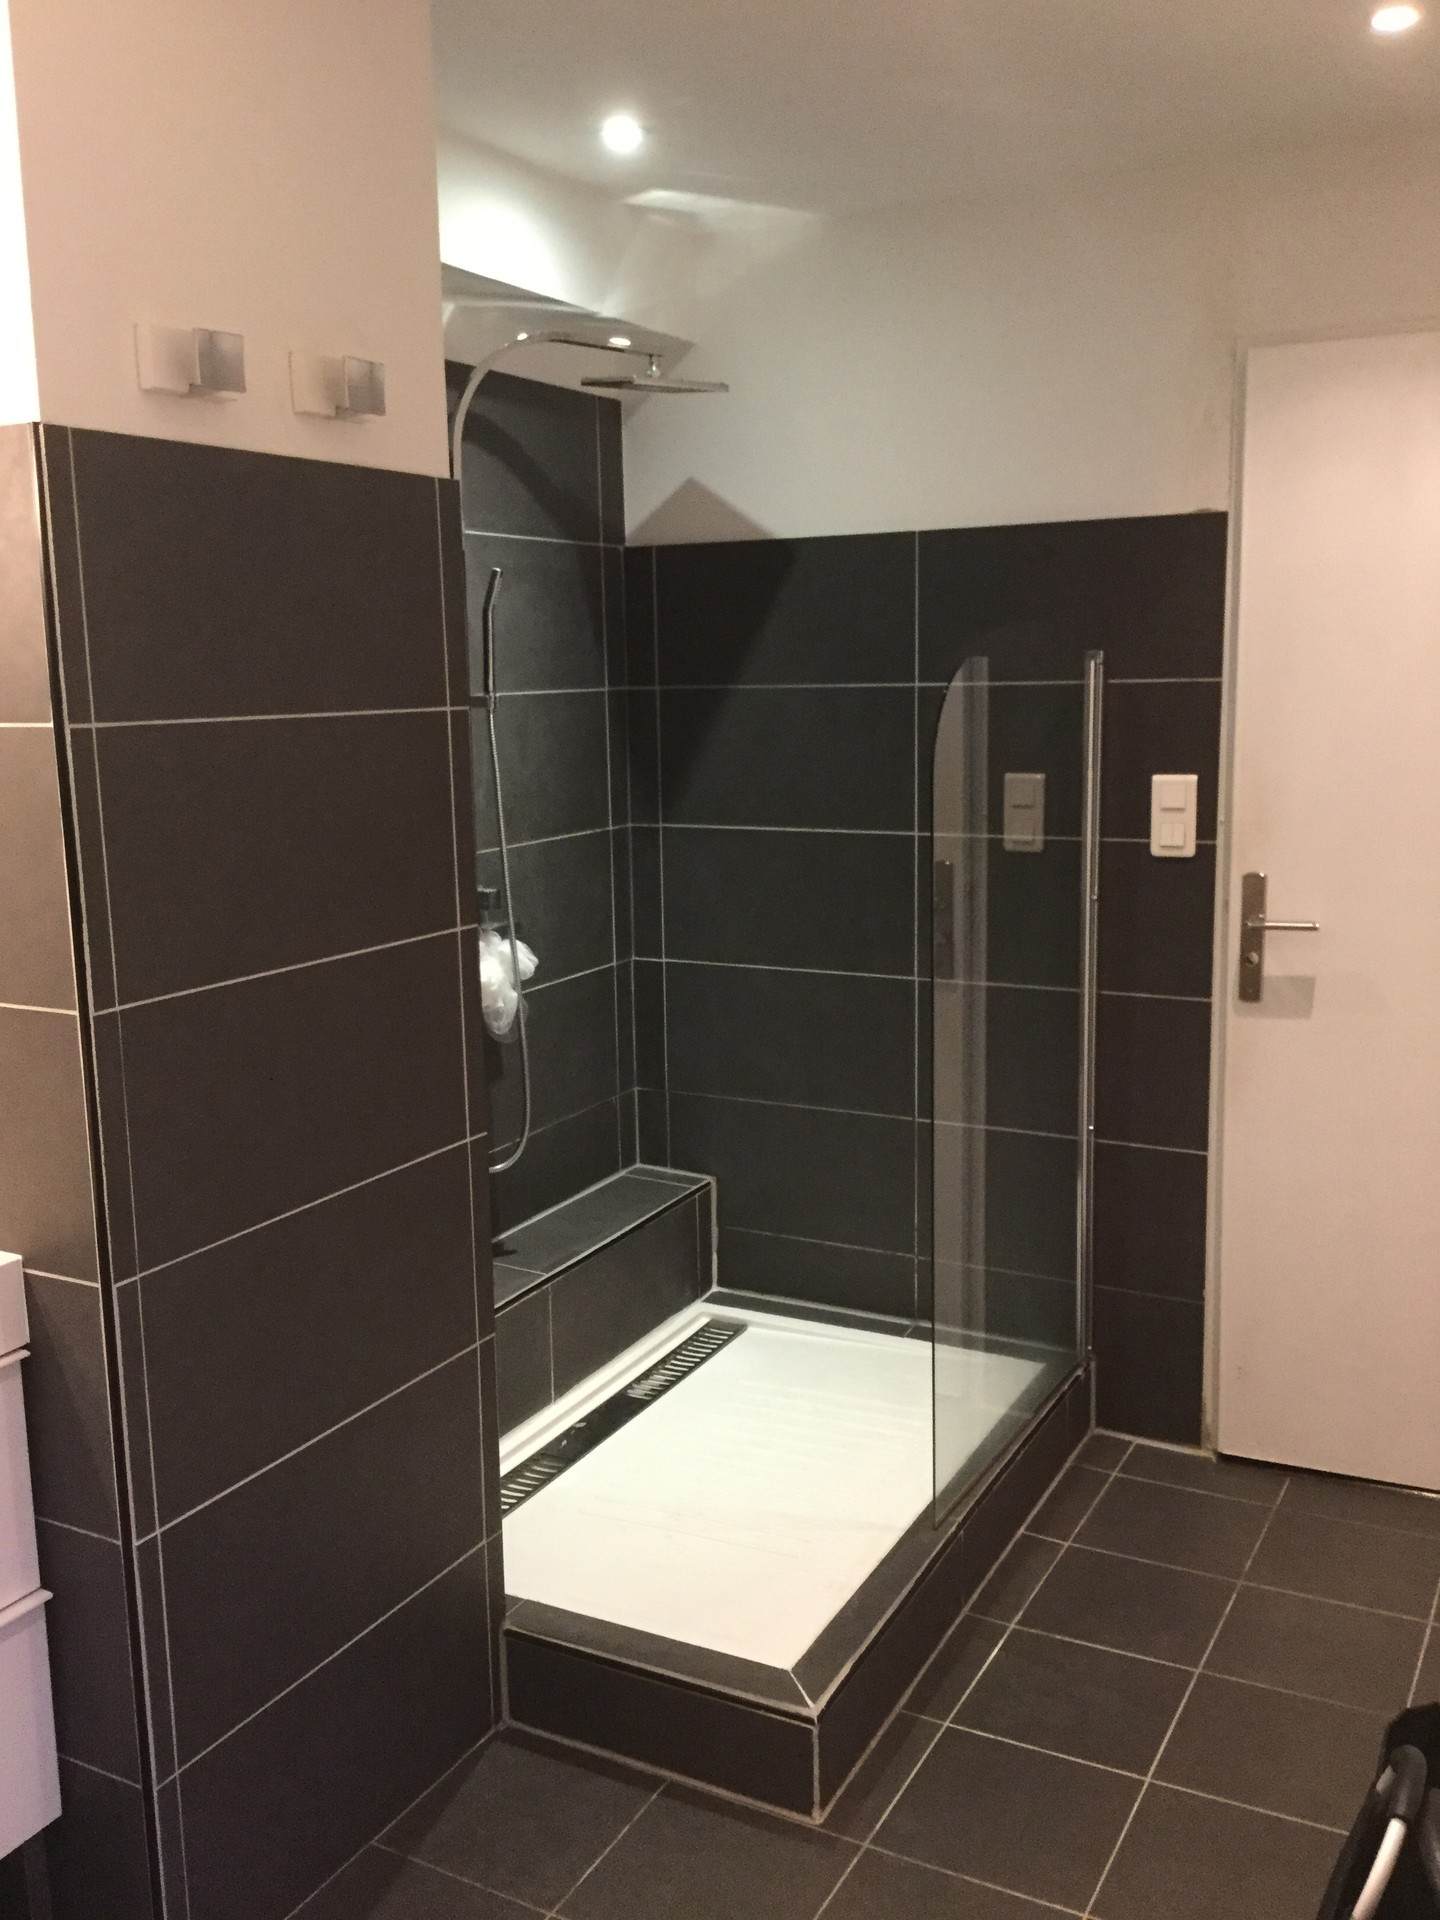 Location Chambre Toulouse Colocation Appartement Moderne Location Chambres Toulouse